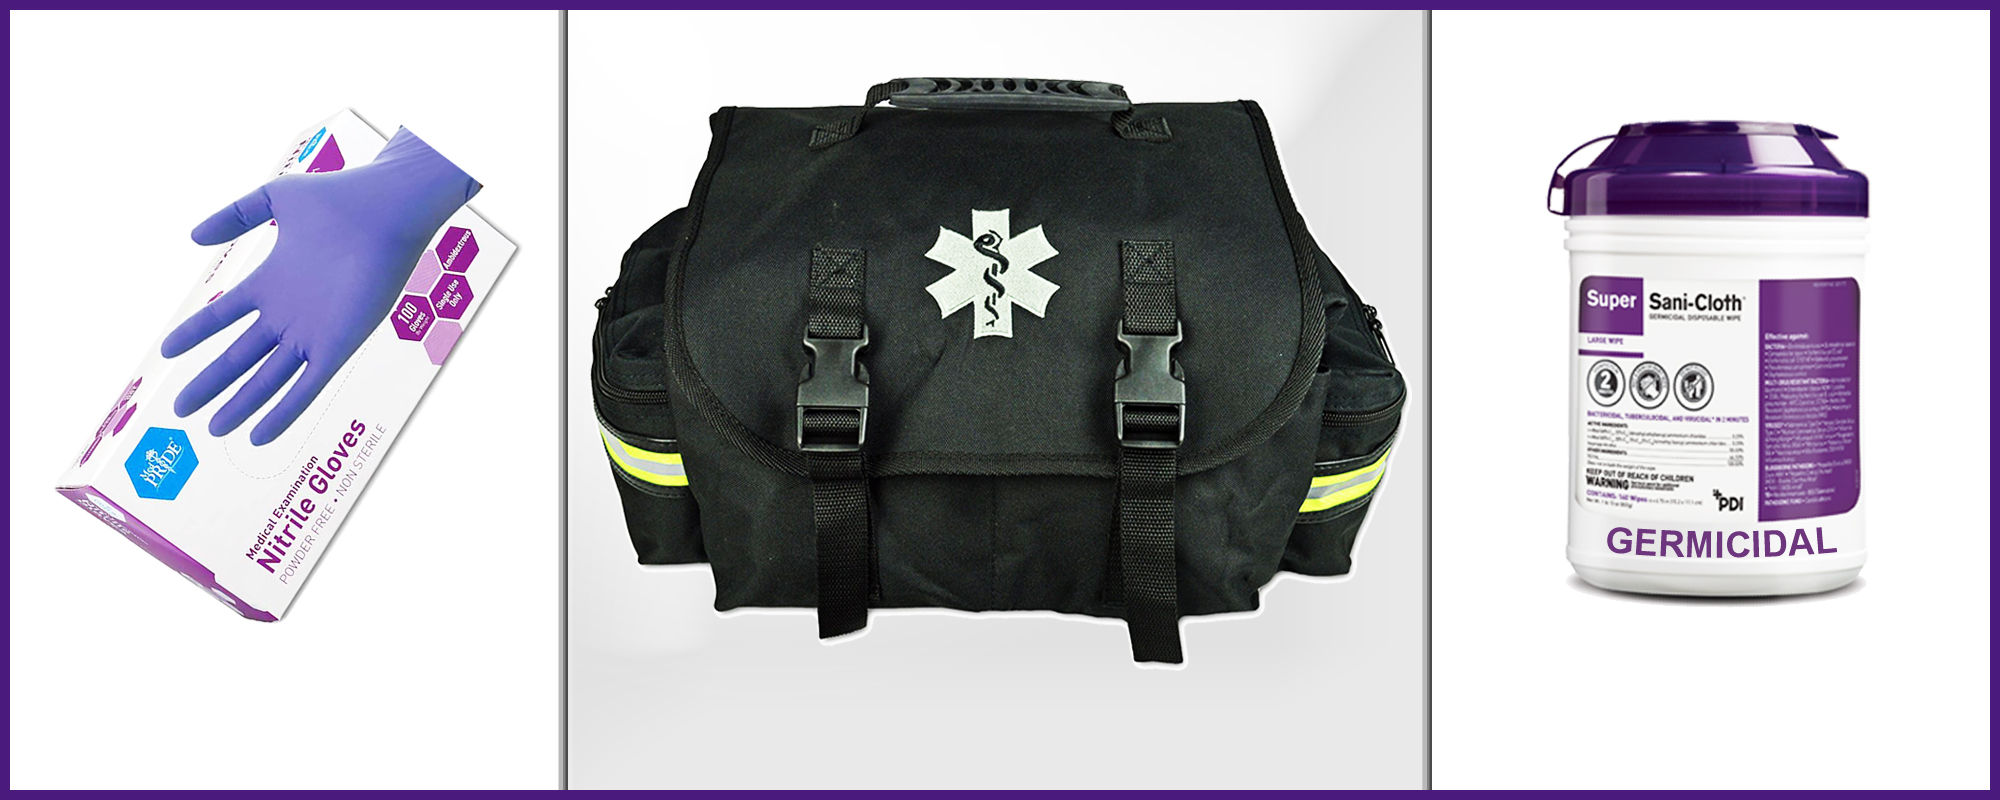 Williams Mobility keeps ample patient safety supplies on hand, including an EMT first responder kit.